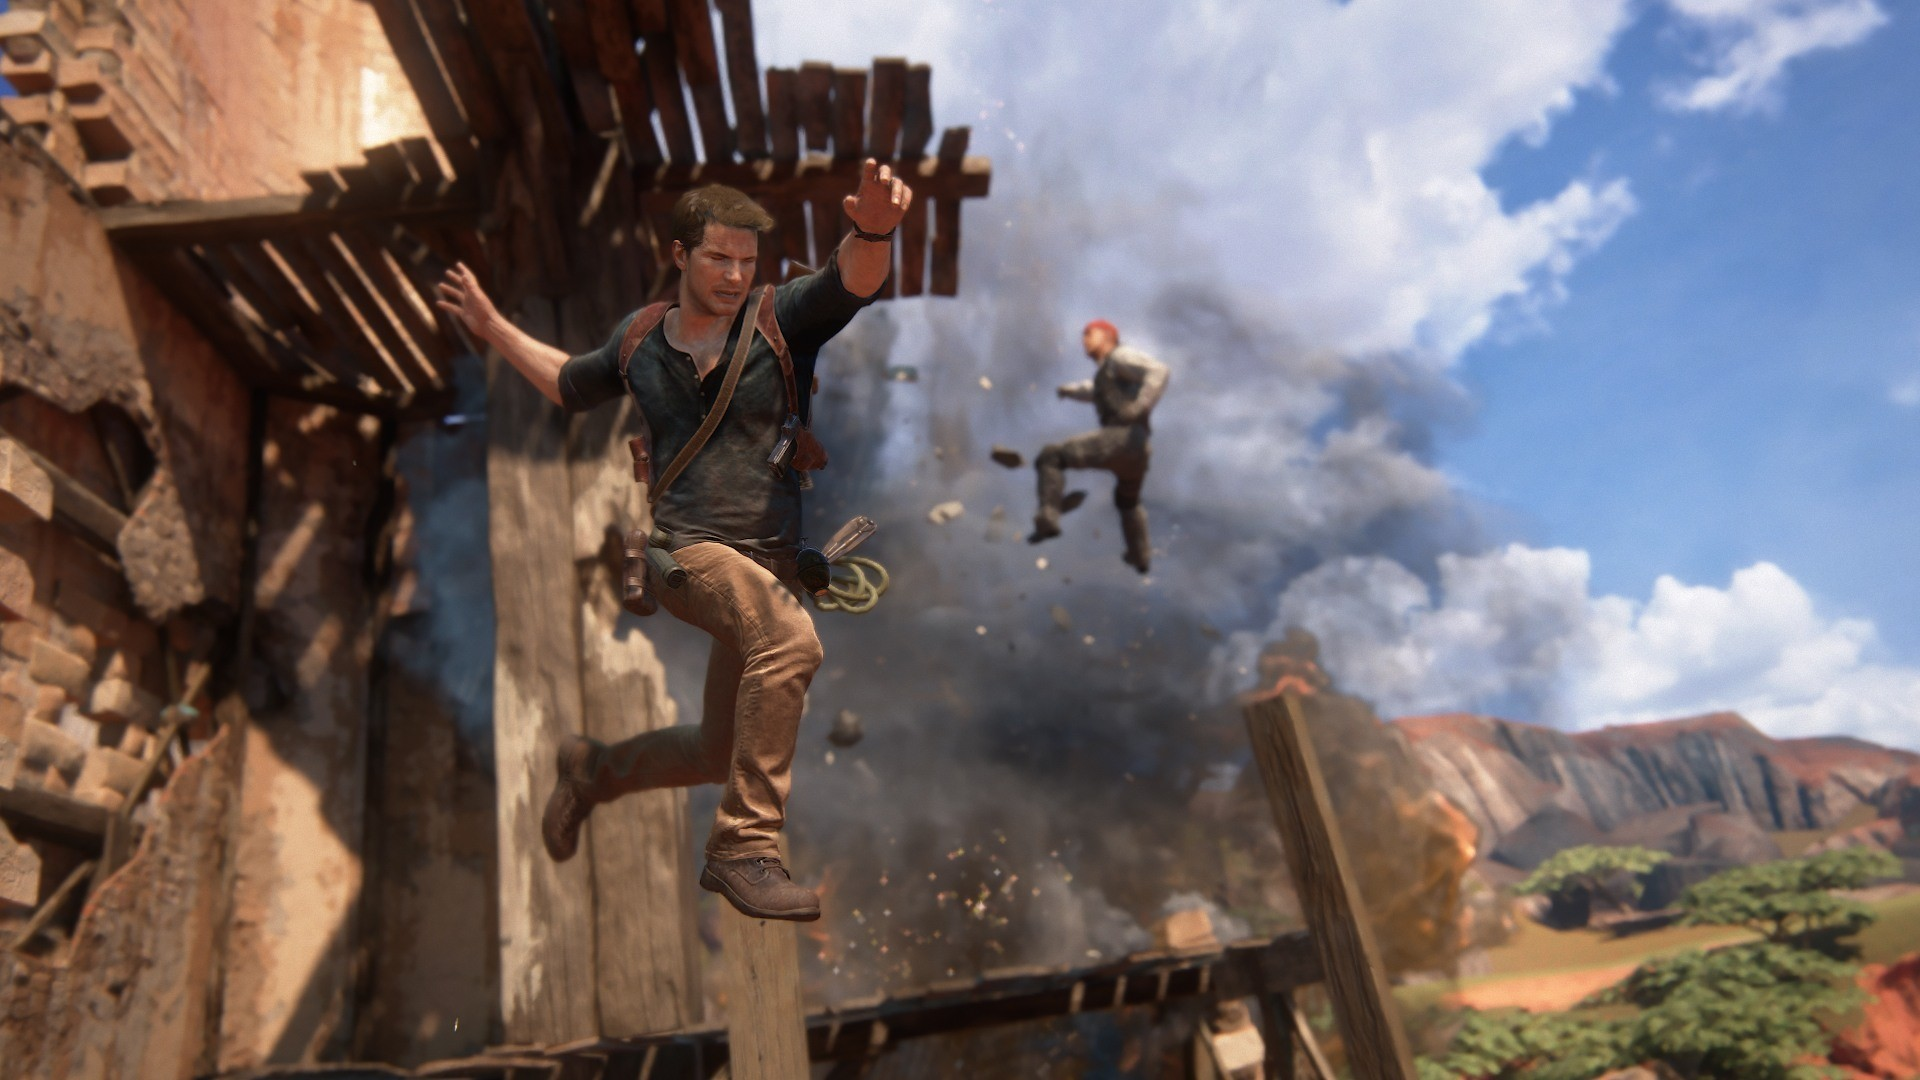 1920x1080 Uncharted Wallpaper wallpaper Uncharted : A Thiefs End HD Wallpapers  Backgrounds